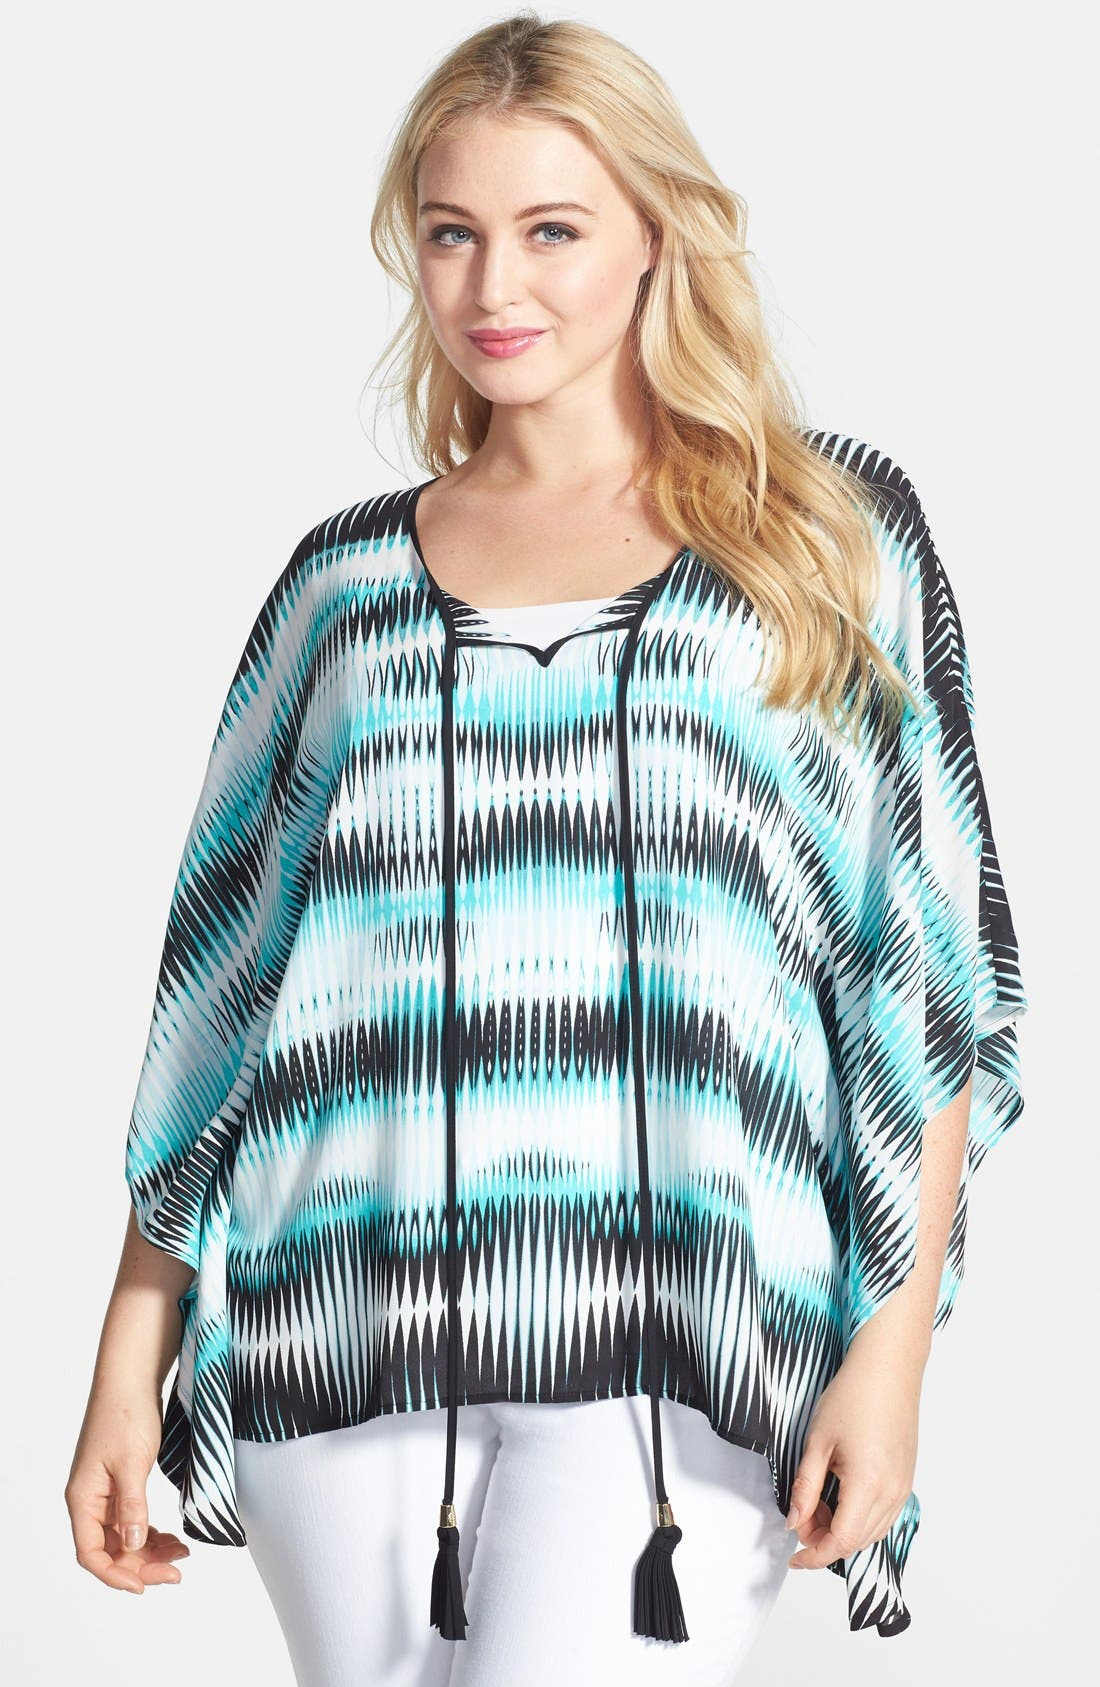 Main Image - Vince Camuto 'Linear Echoes' Caftan Style Top (Plus Size)